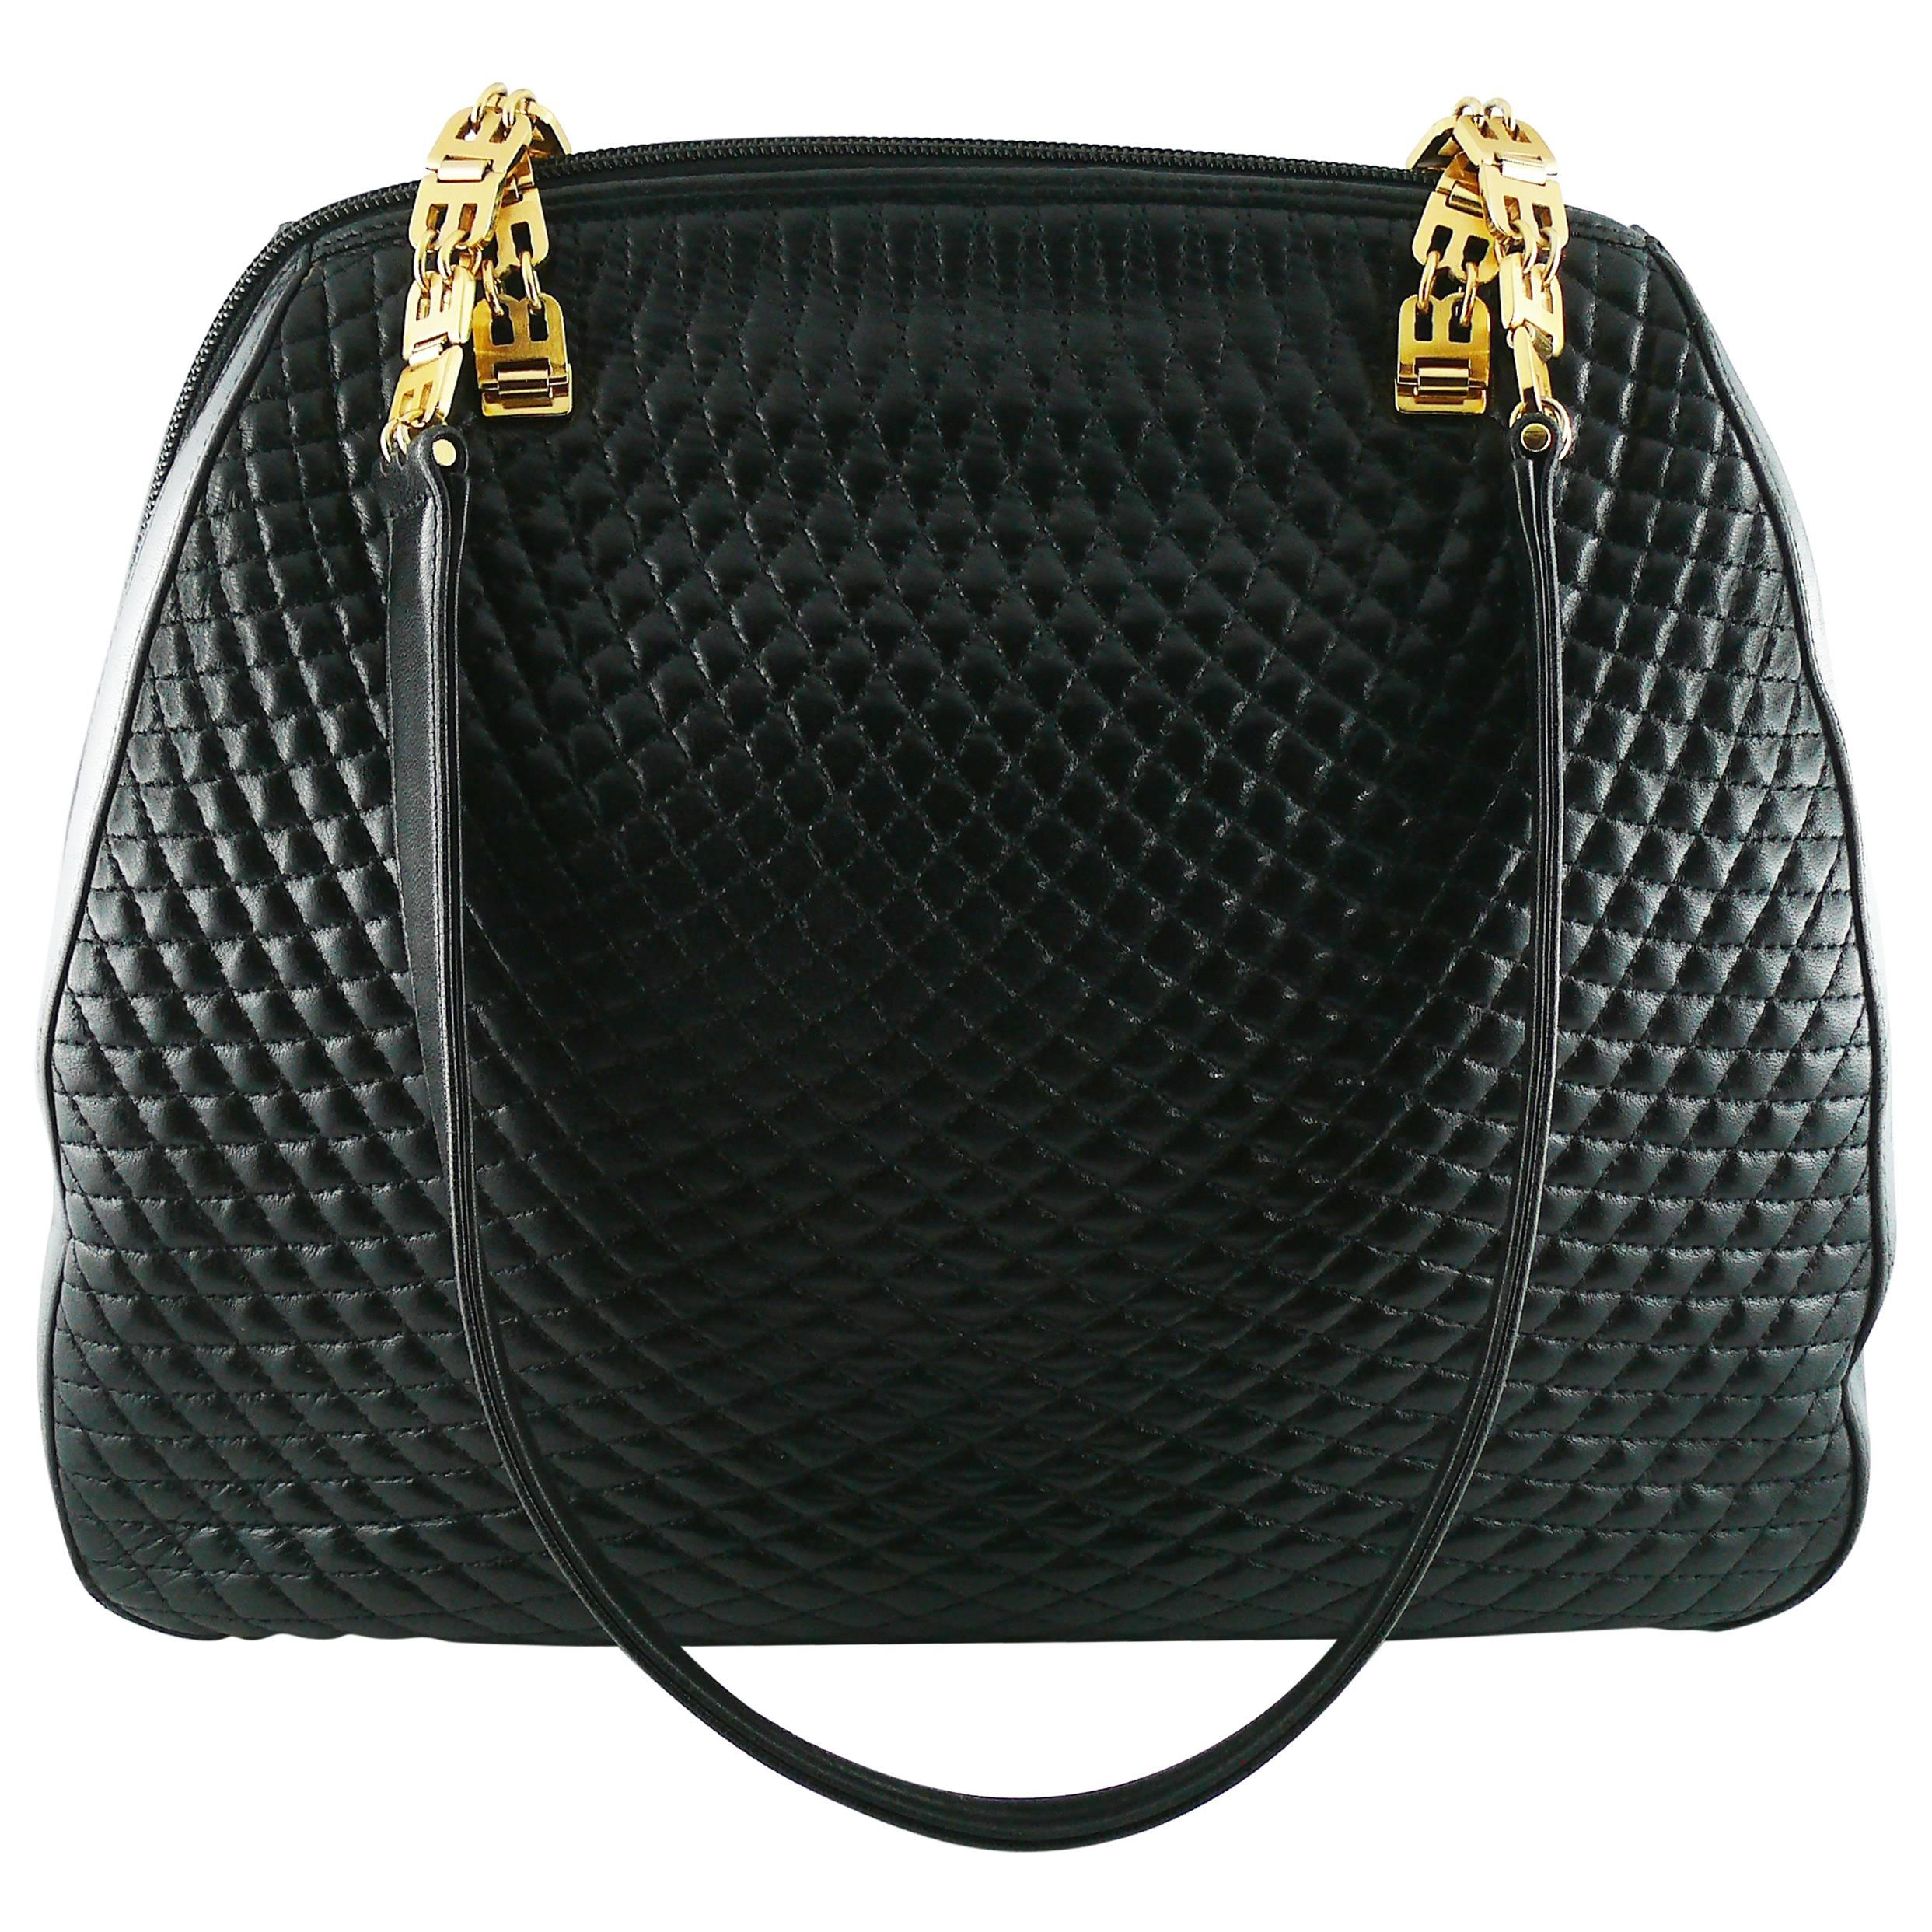 Bally Vintage Quilted Black Leather Shoulder Gold Chain Bag at 1stdibs d6bb12daed509